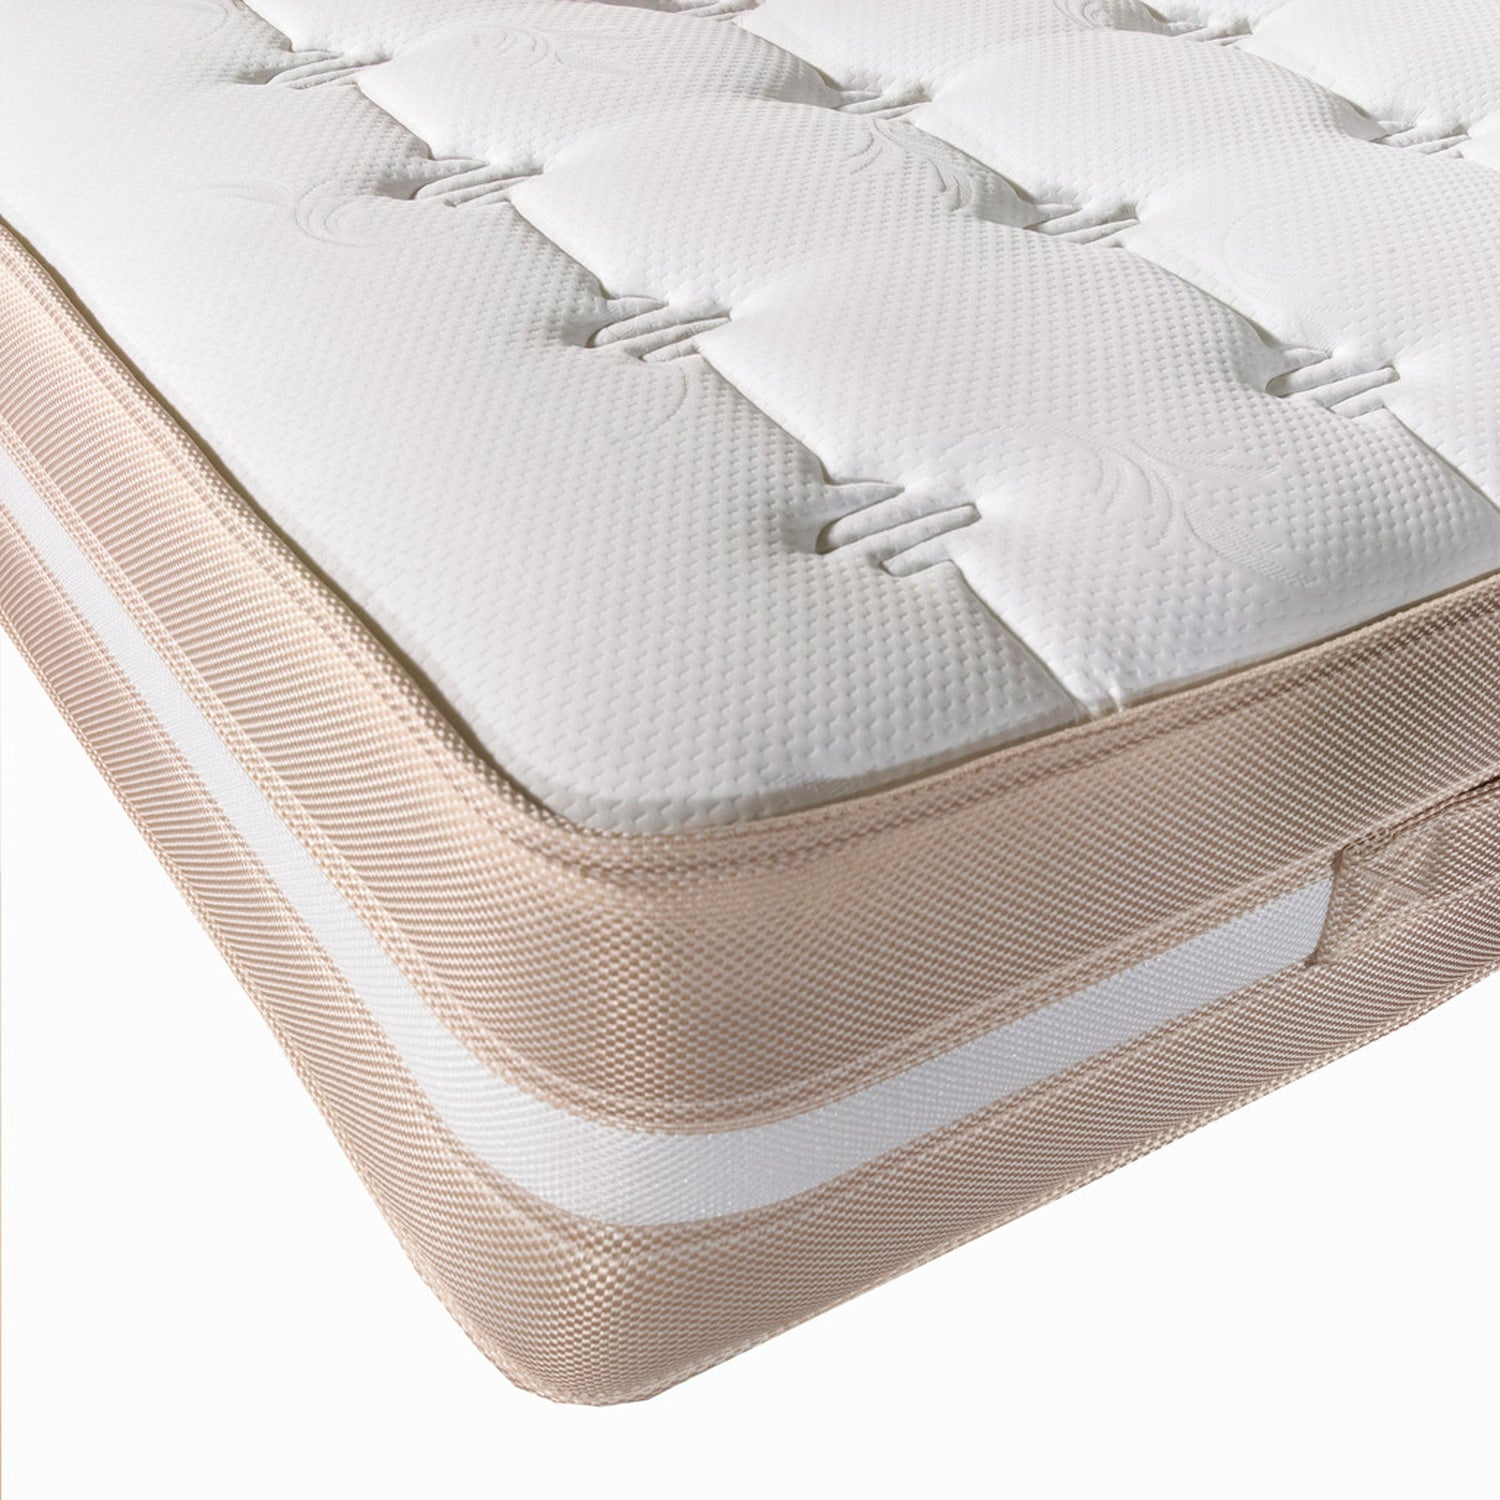 Georgia Mattress (Firm, Depth 31 cm)